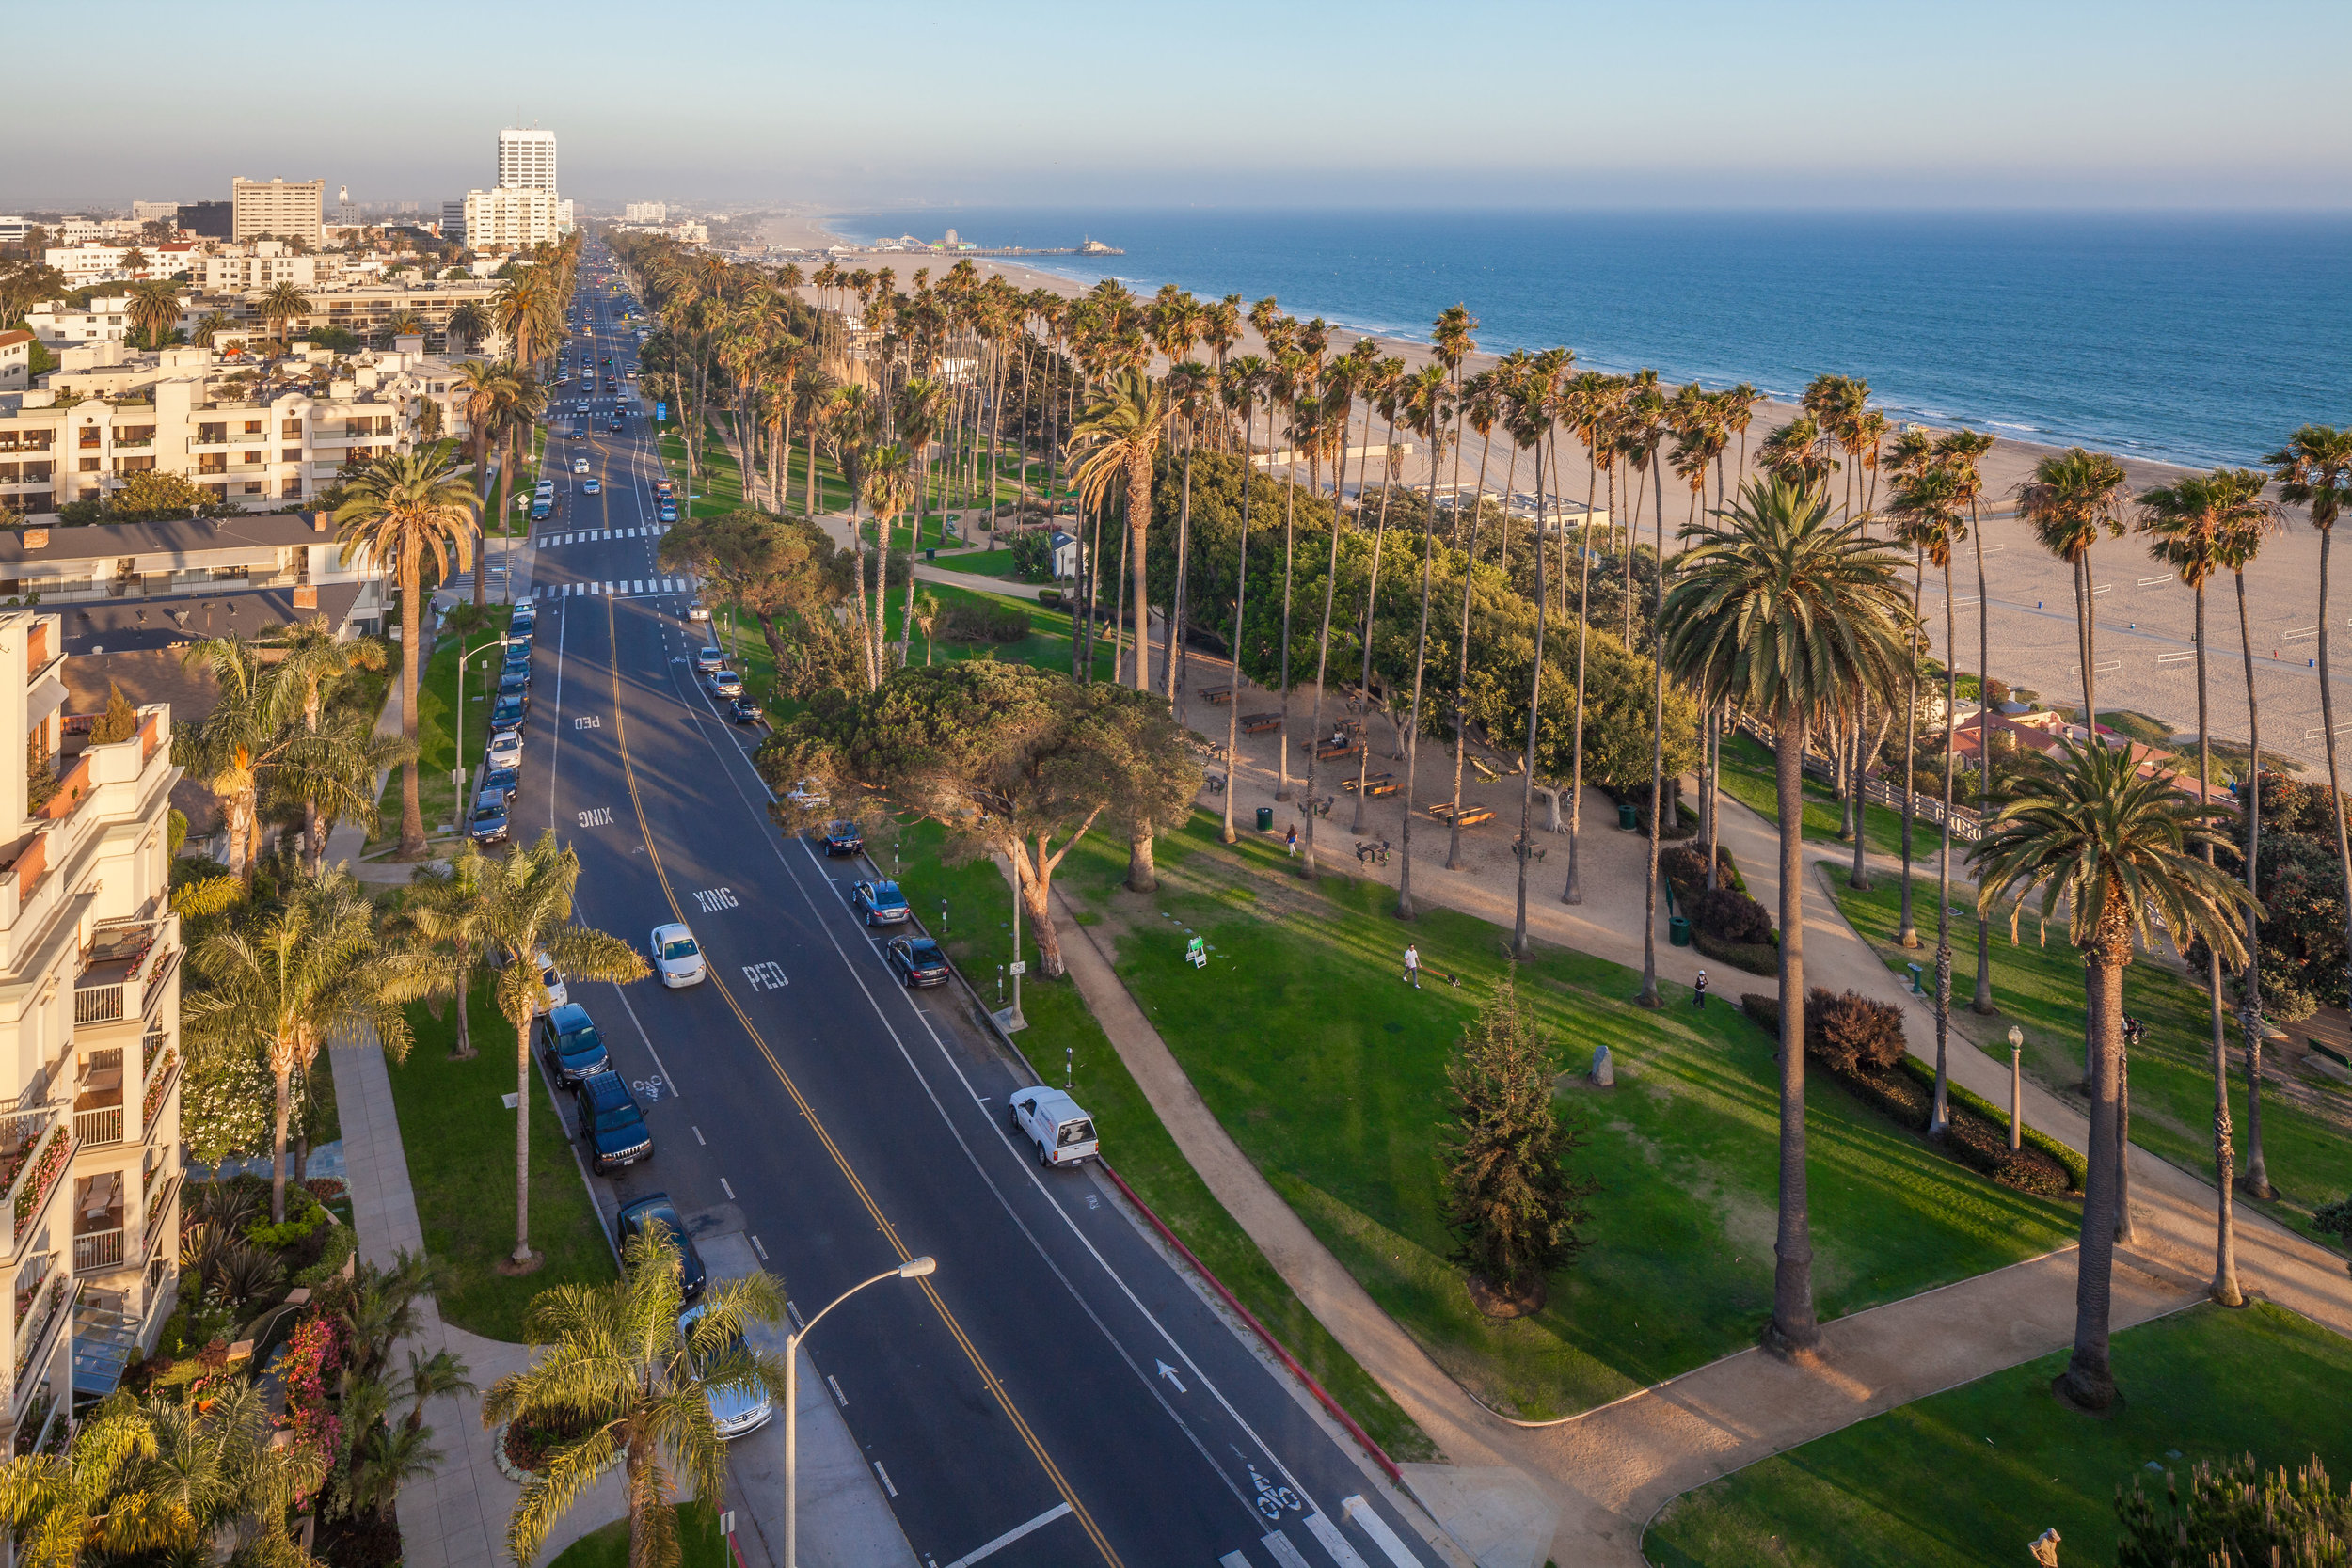 Buy property on Ocean Ave in Santa Monica